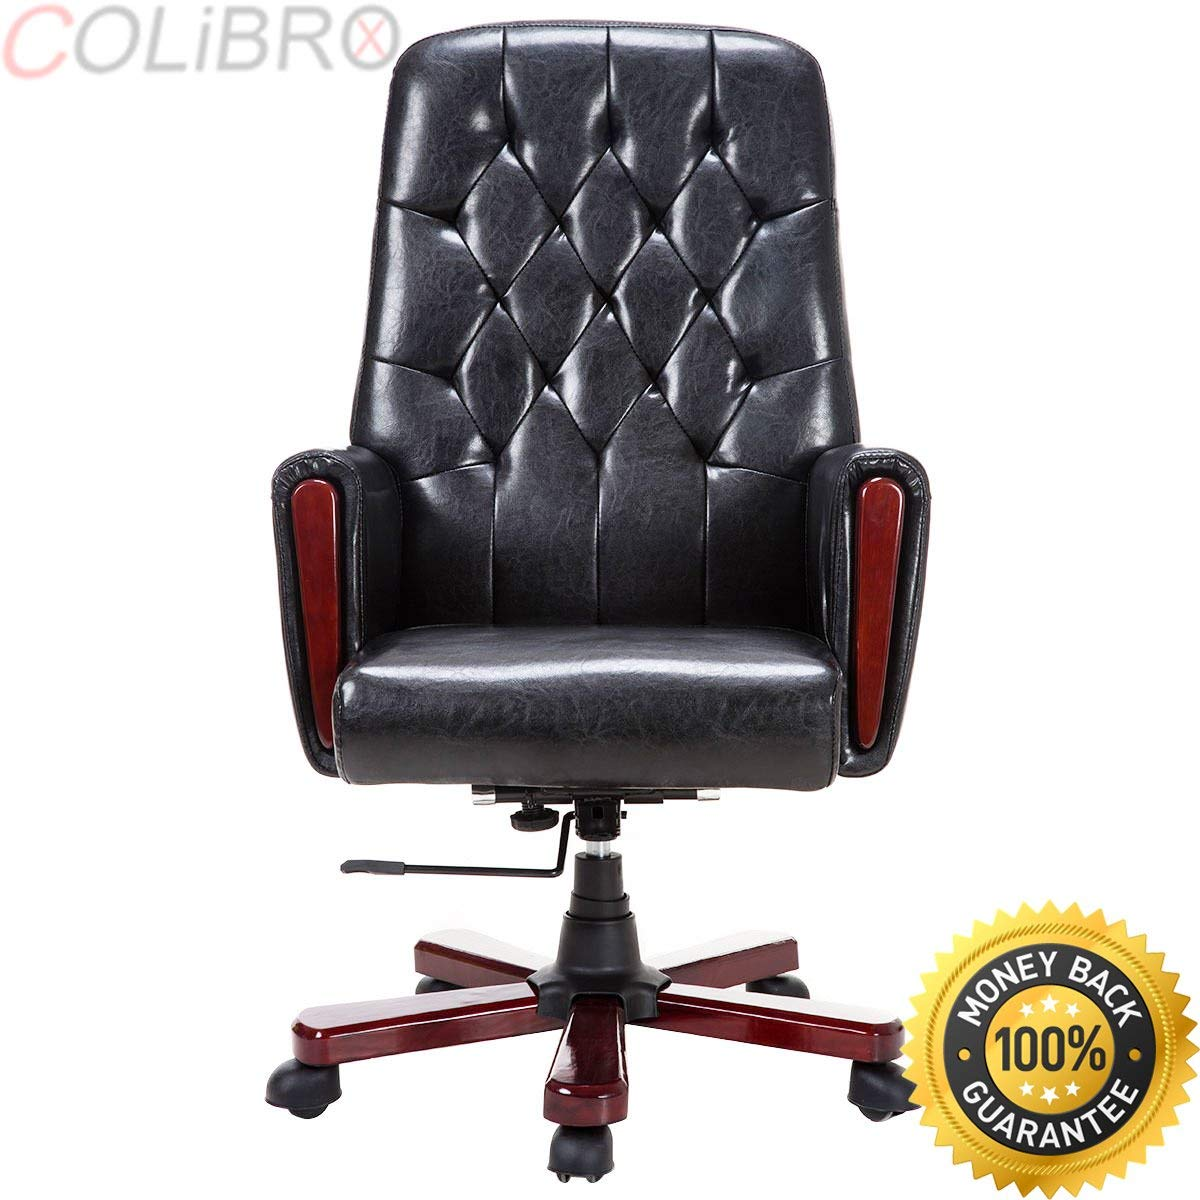 Colibrox modern high back pu leather deluxe guest office accent chair furniture black new